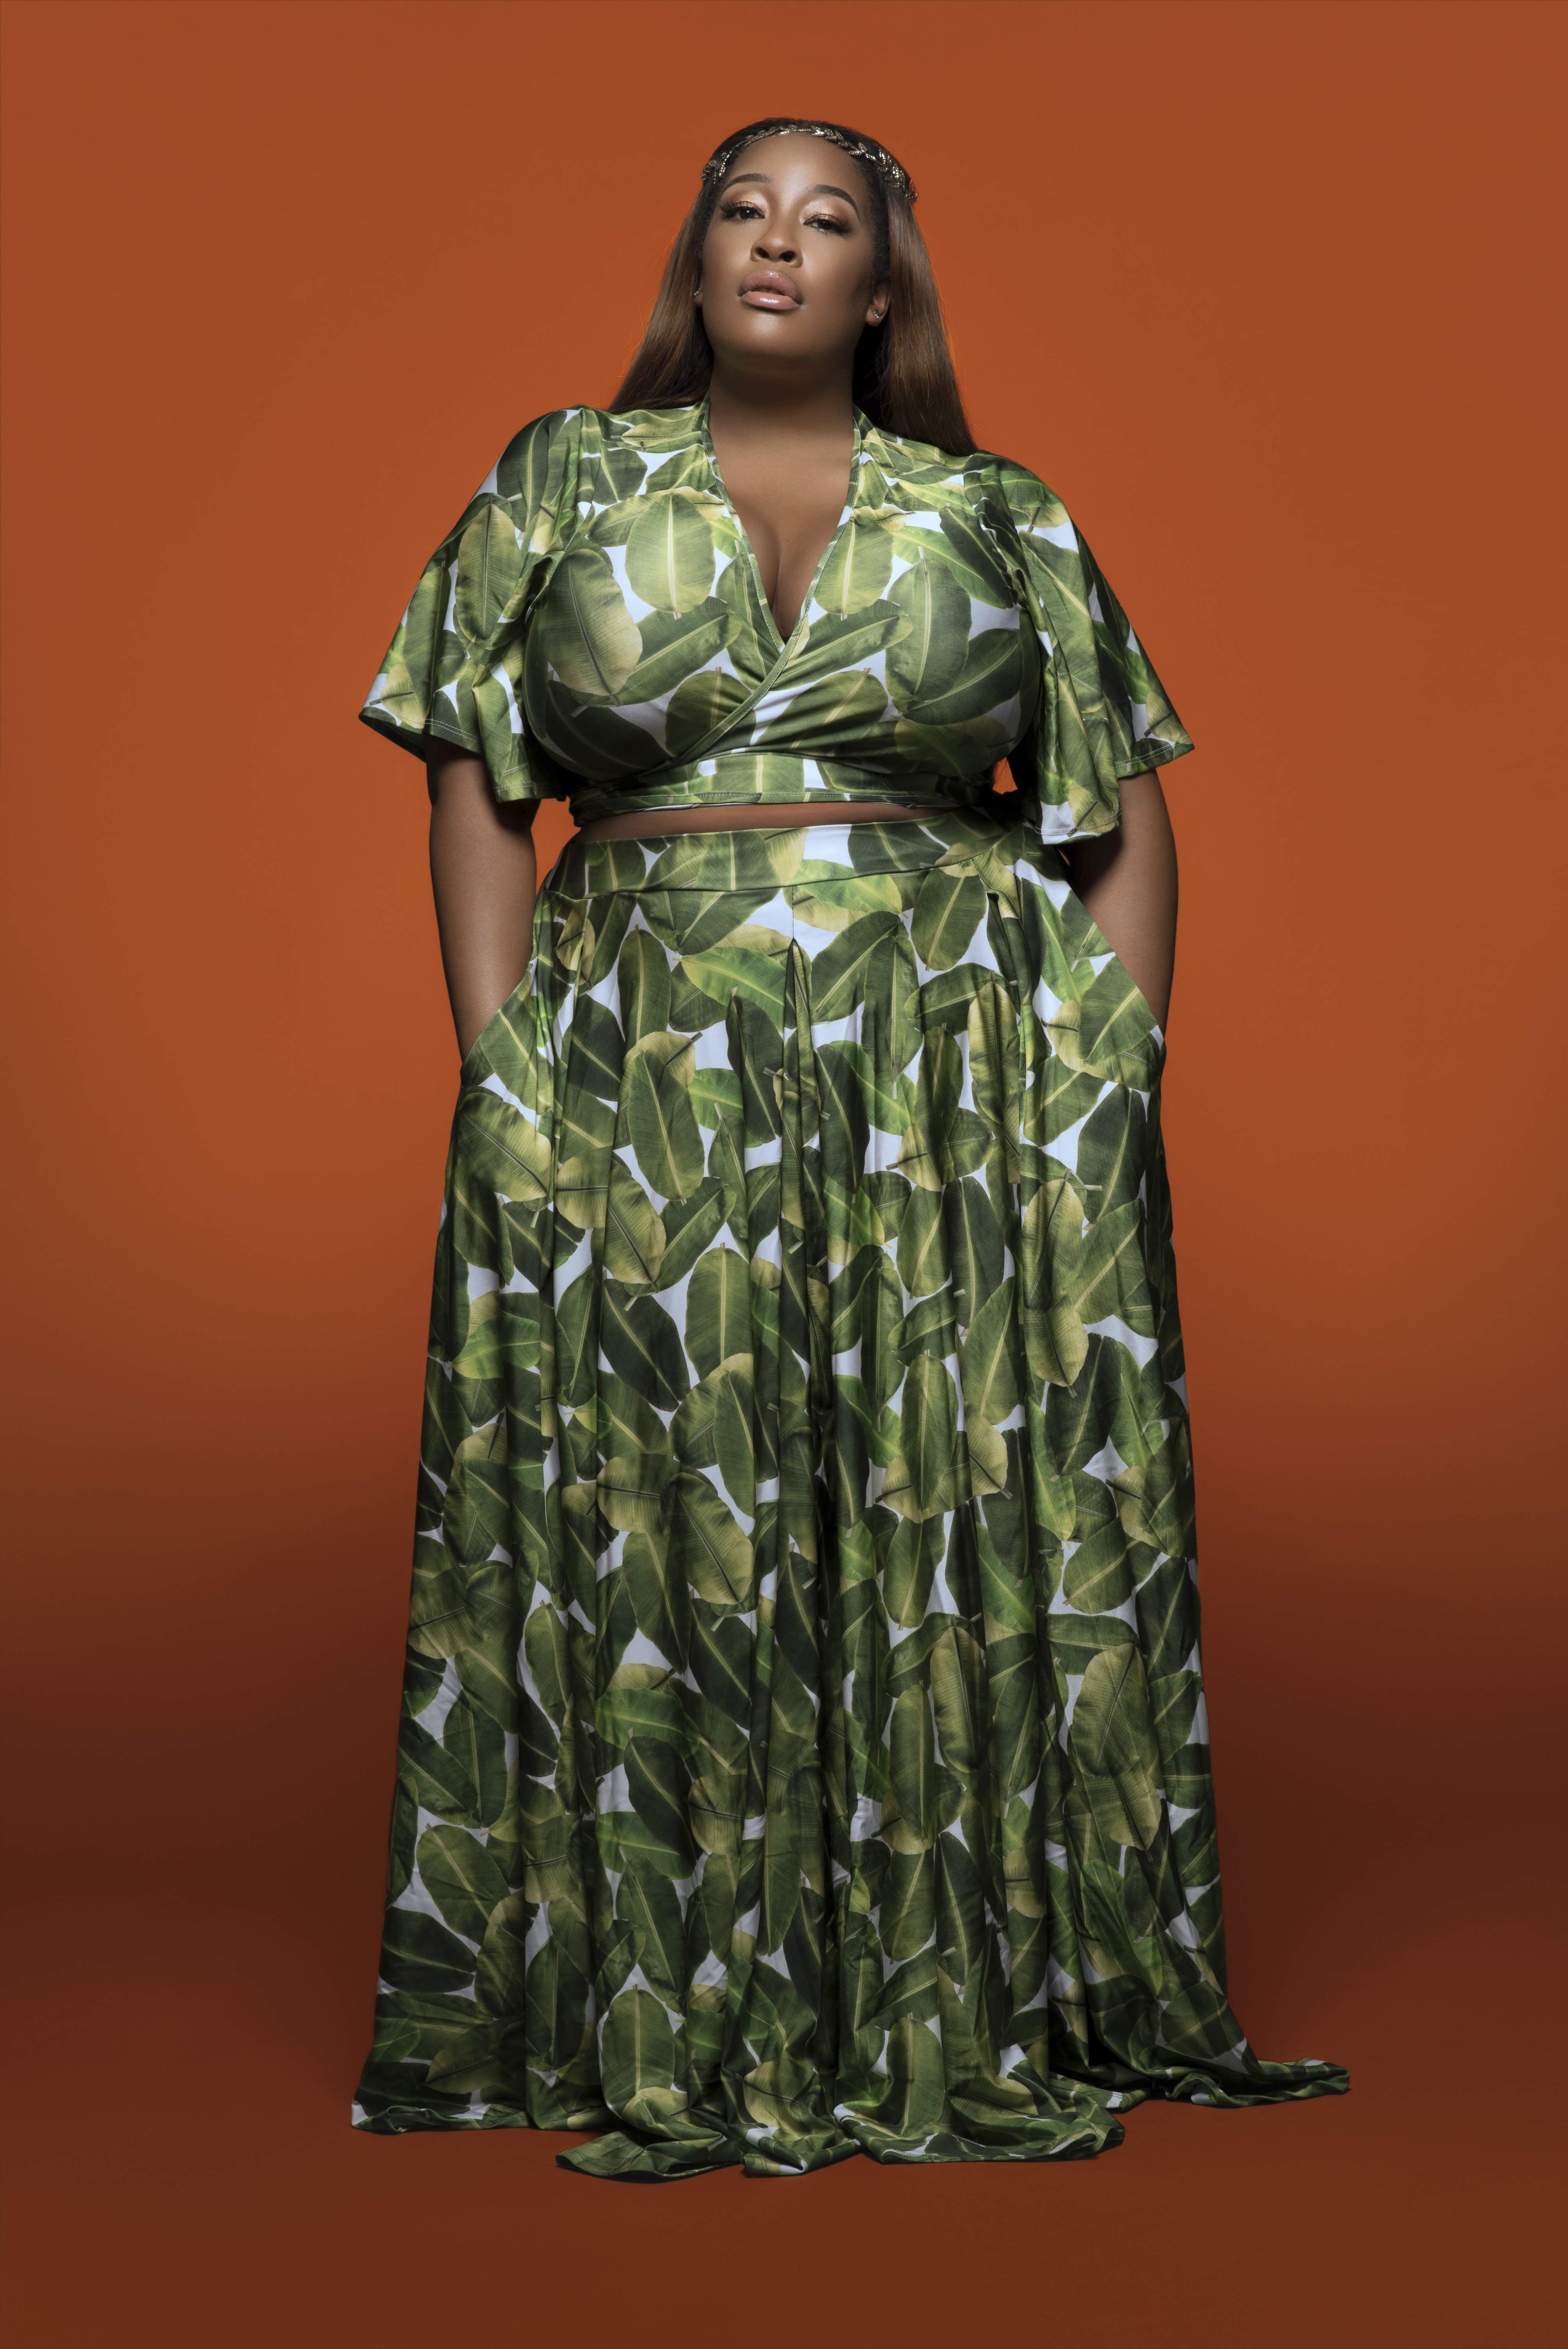 9fdeef2f1f7 Plus size blogger, Essie Golden launches a collaboration with Rebdolls